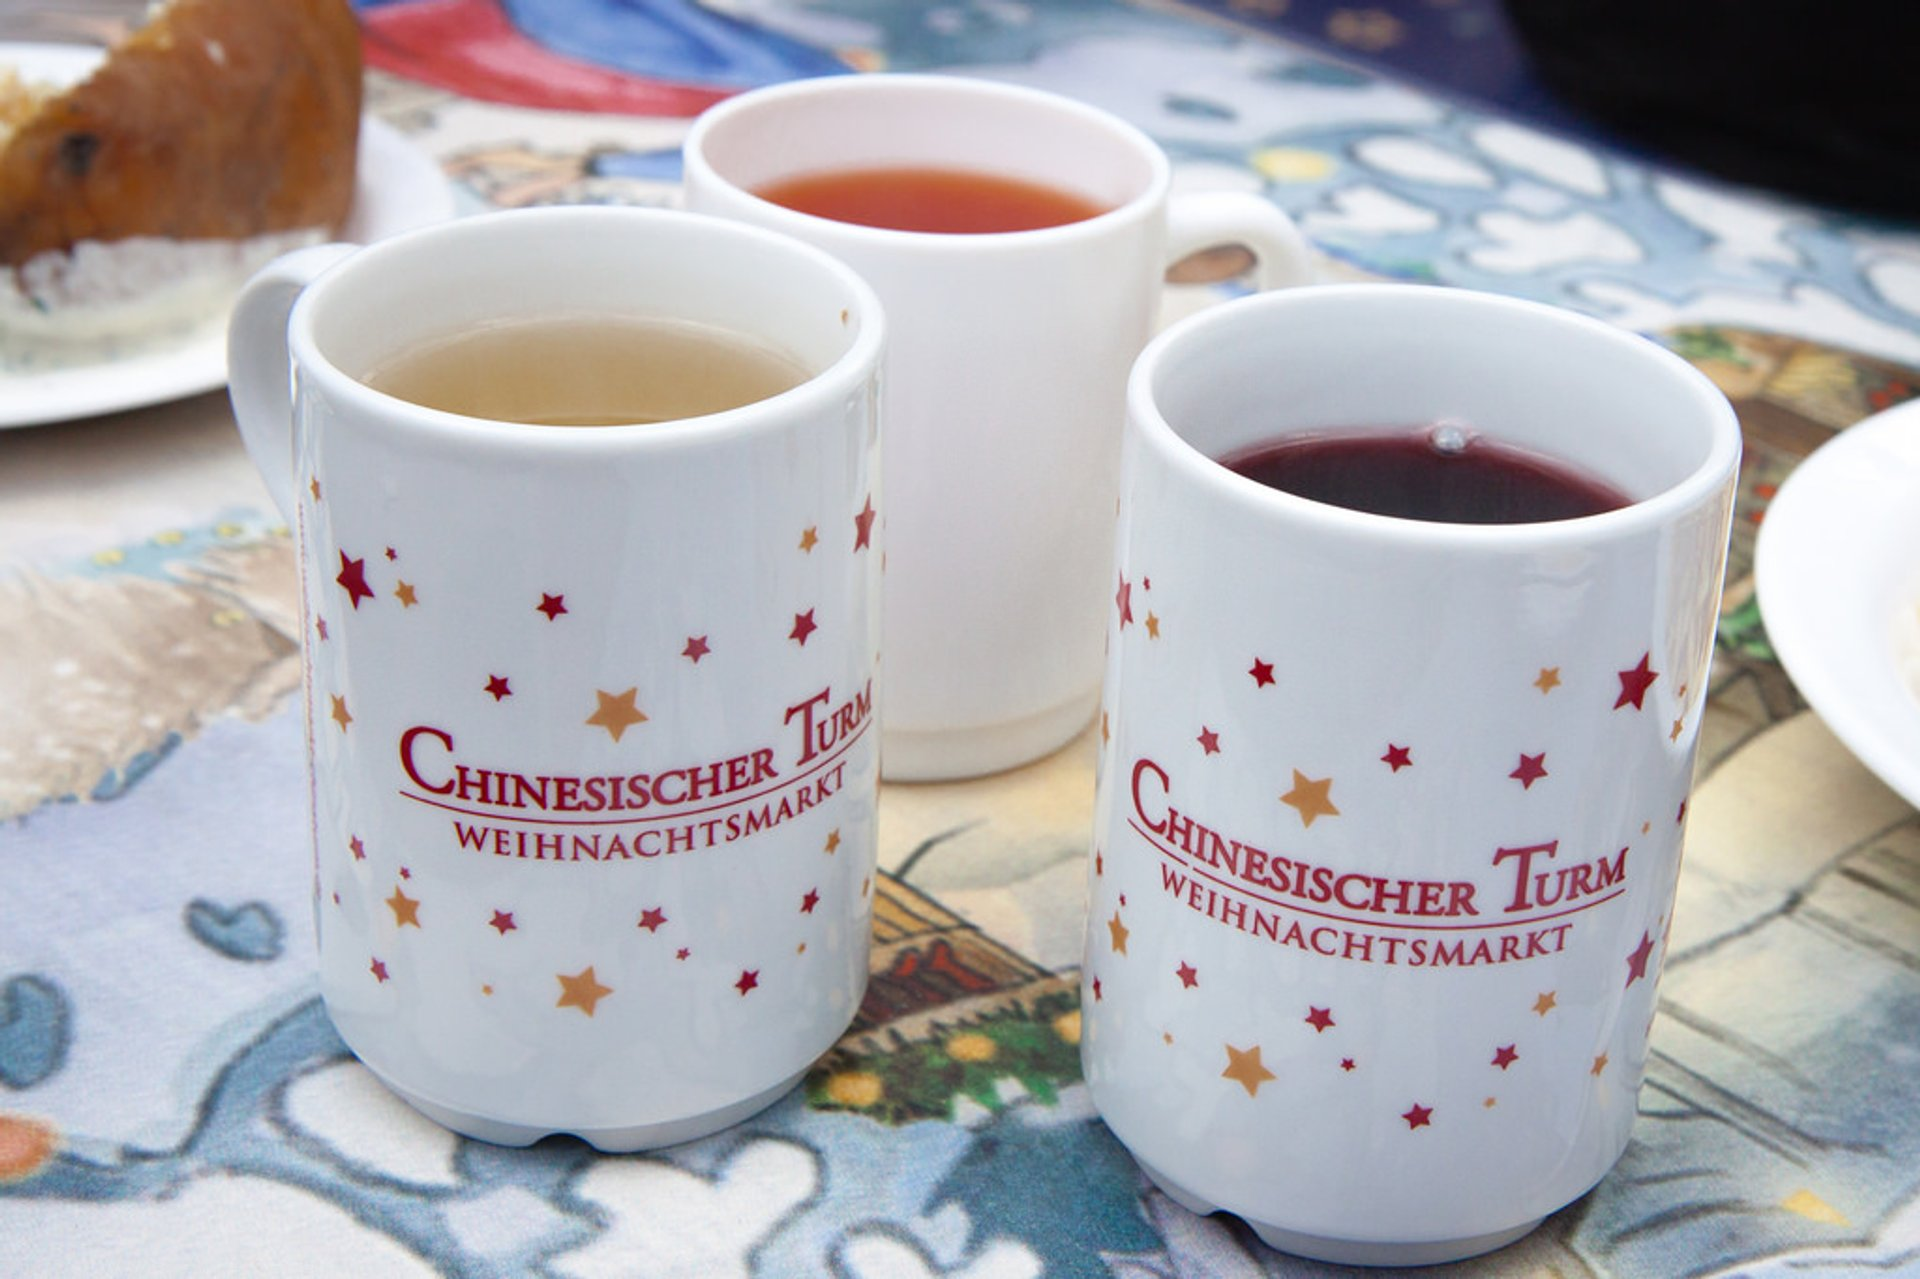 Glühwein and Kinderpunsch at Munich Christmas Market 2020